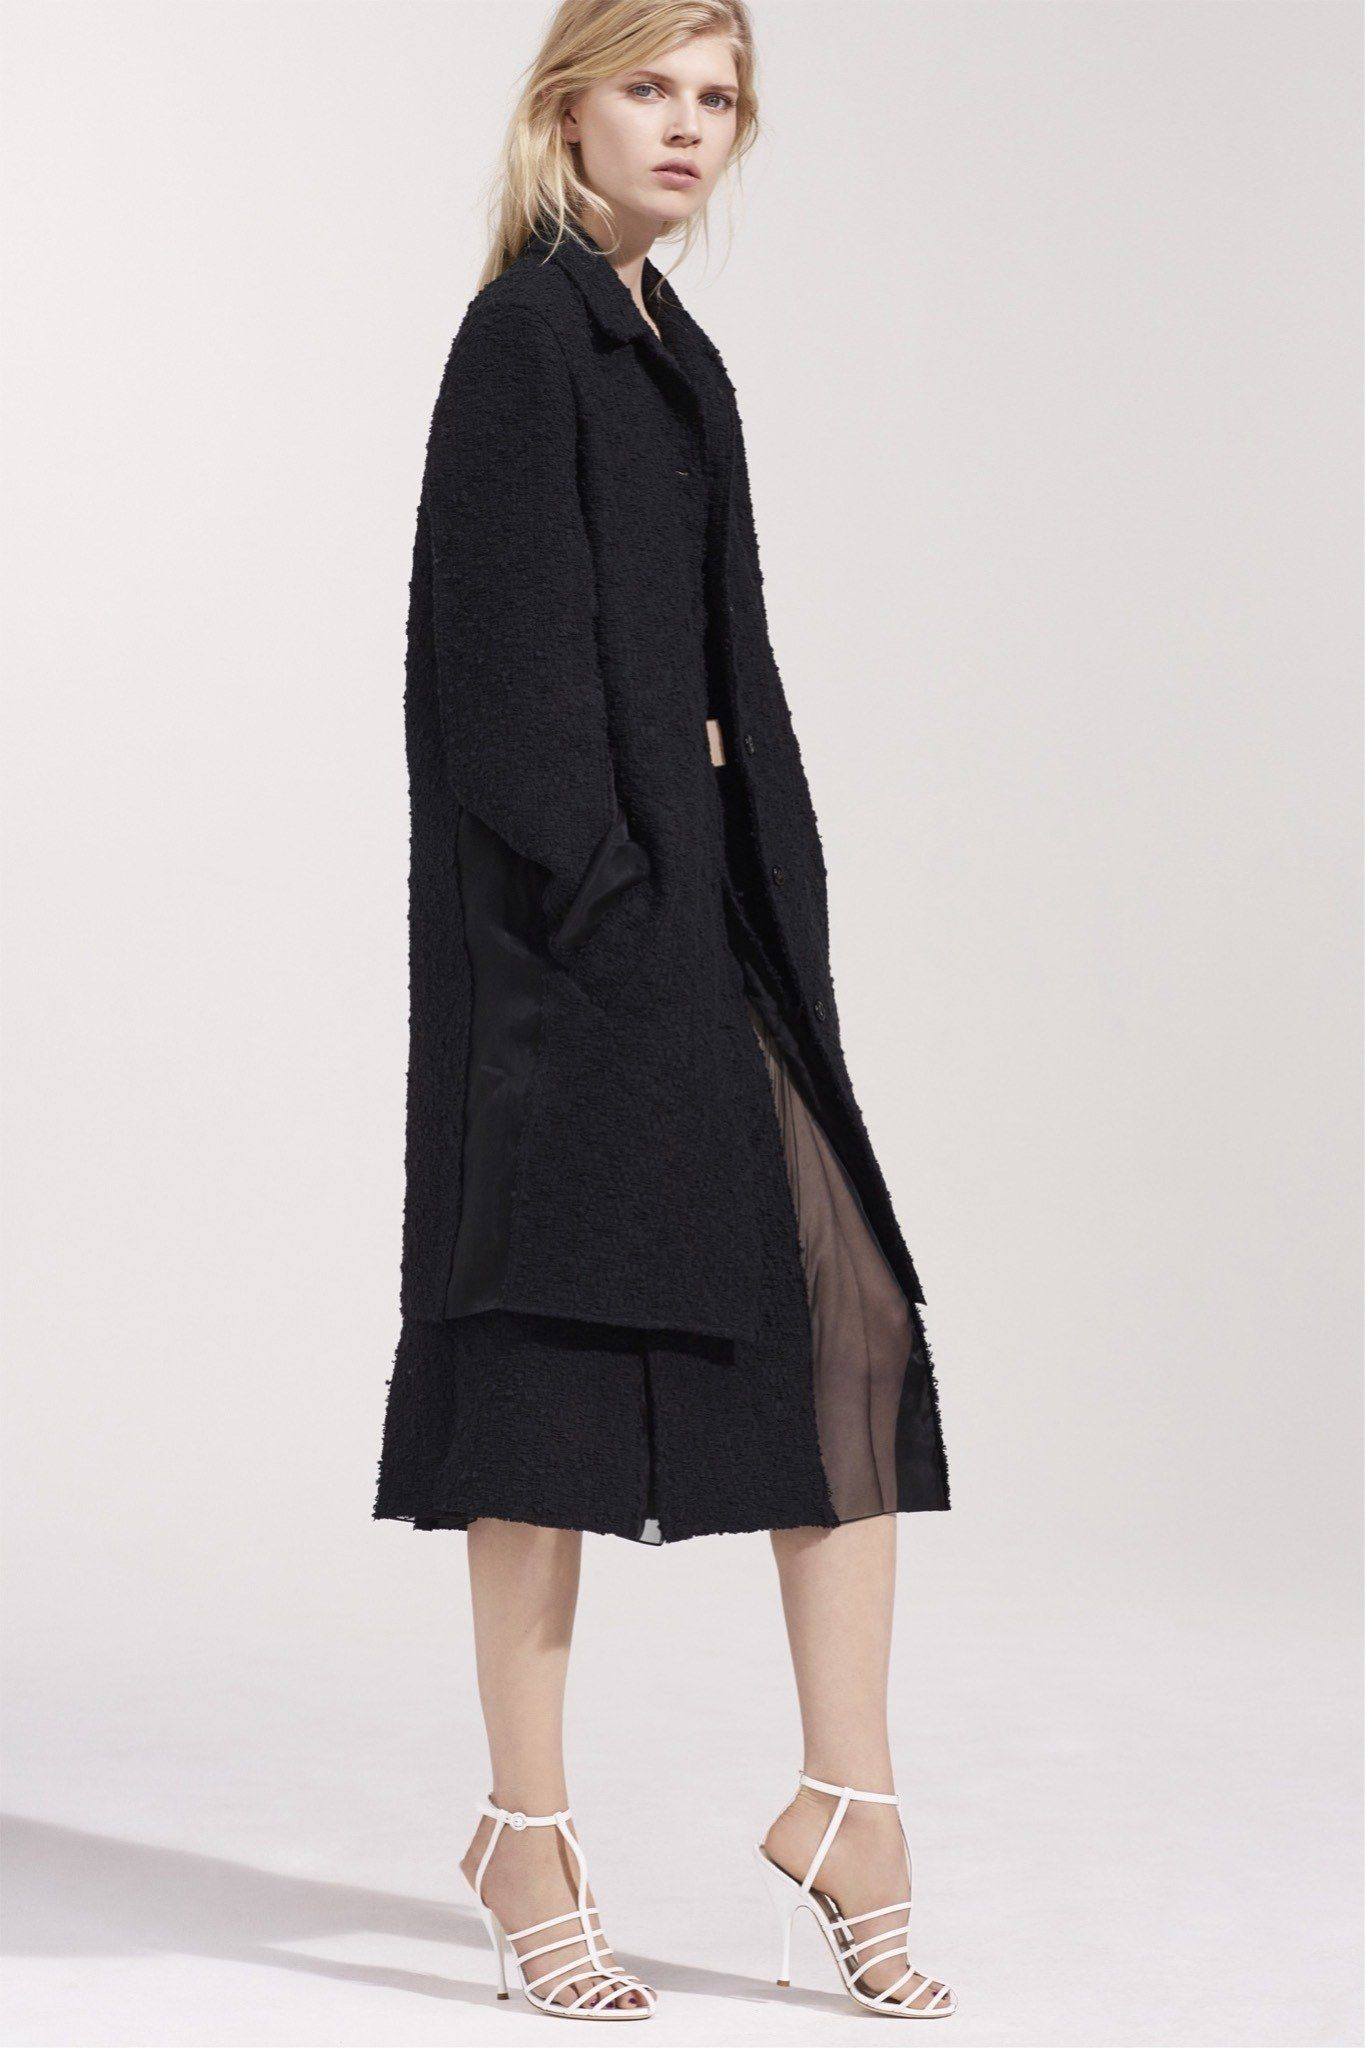 See the complete Nina Ricci Resort 2016 collection.